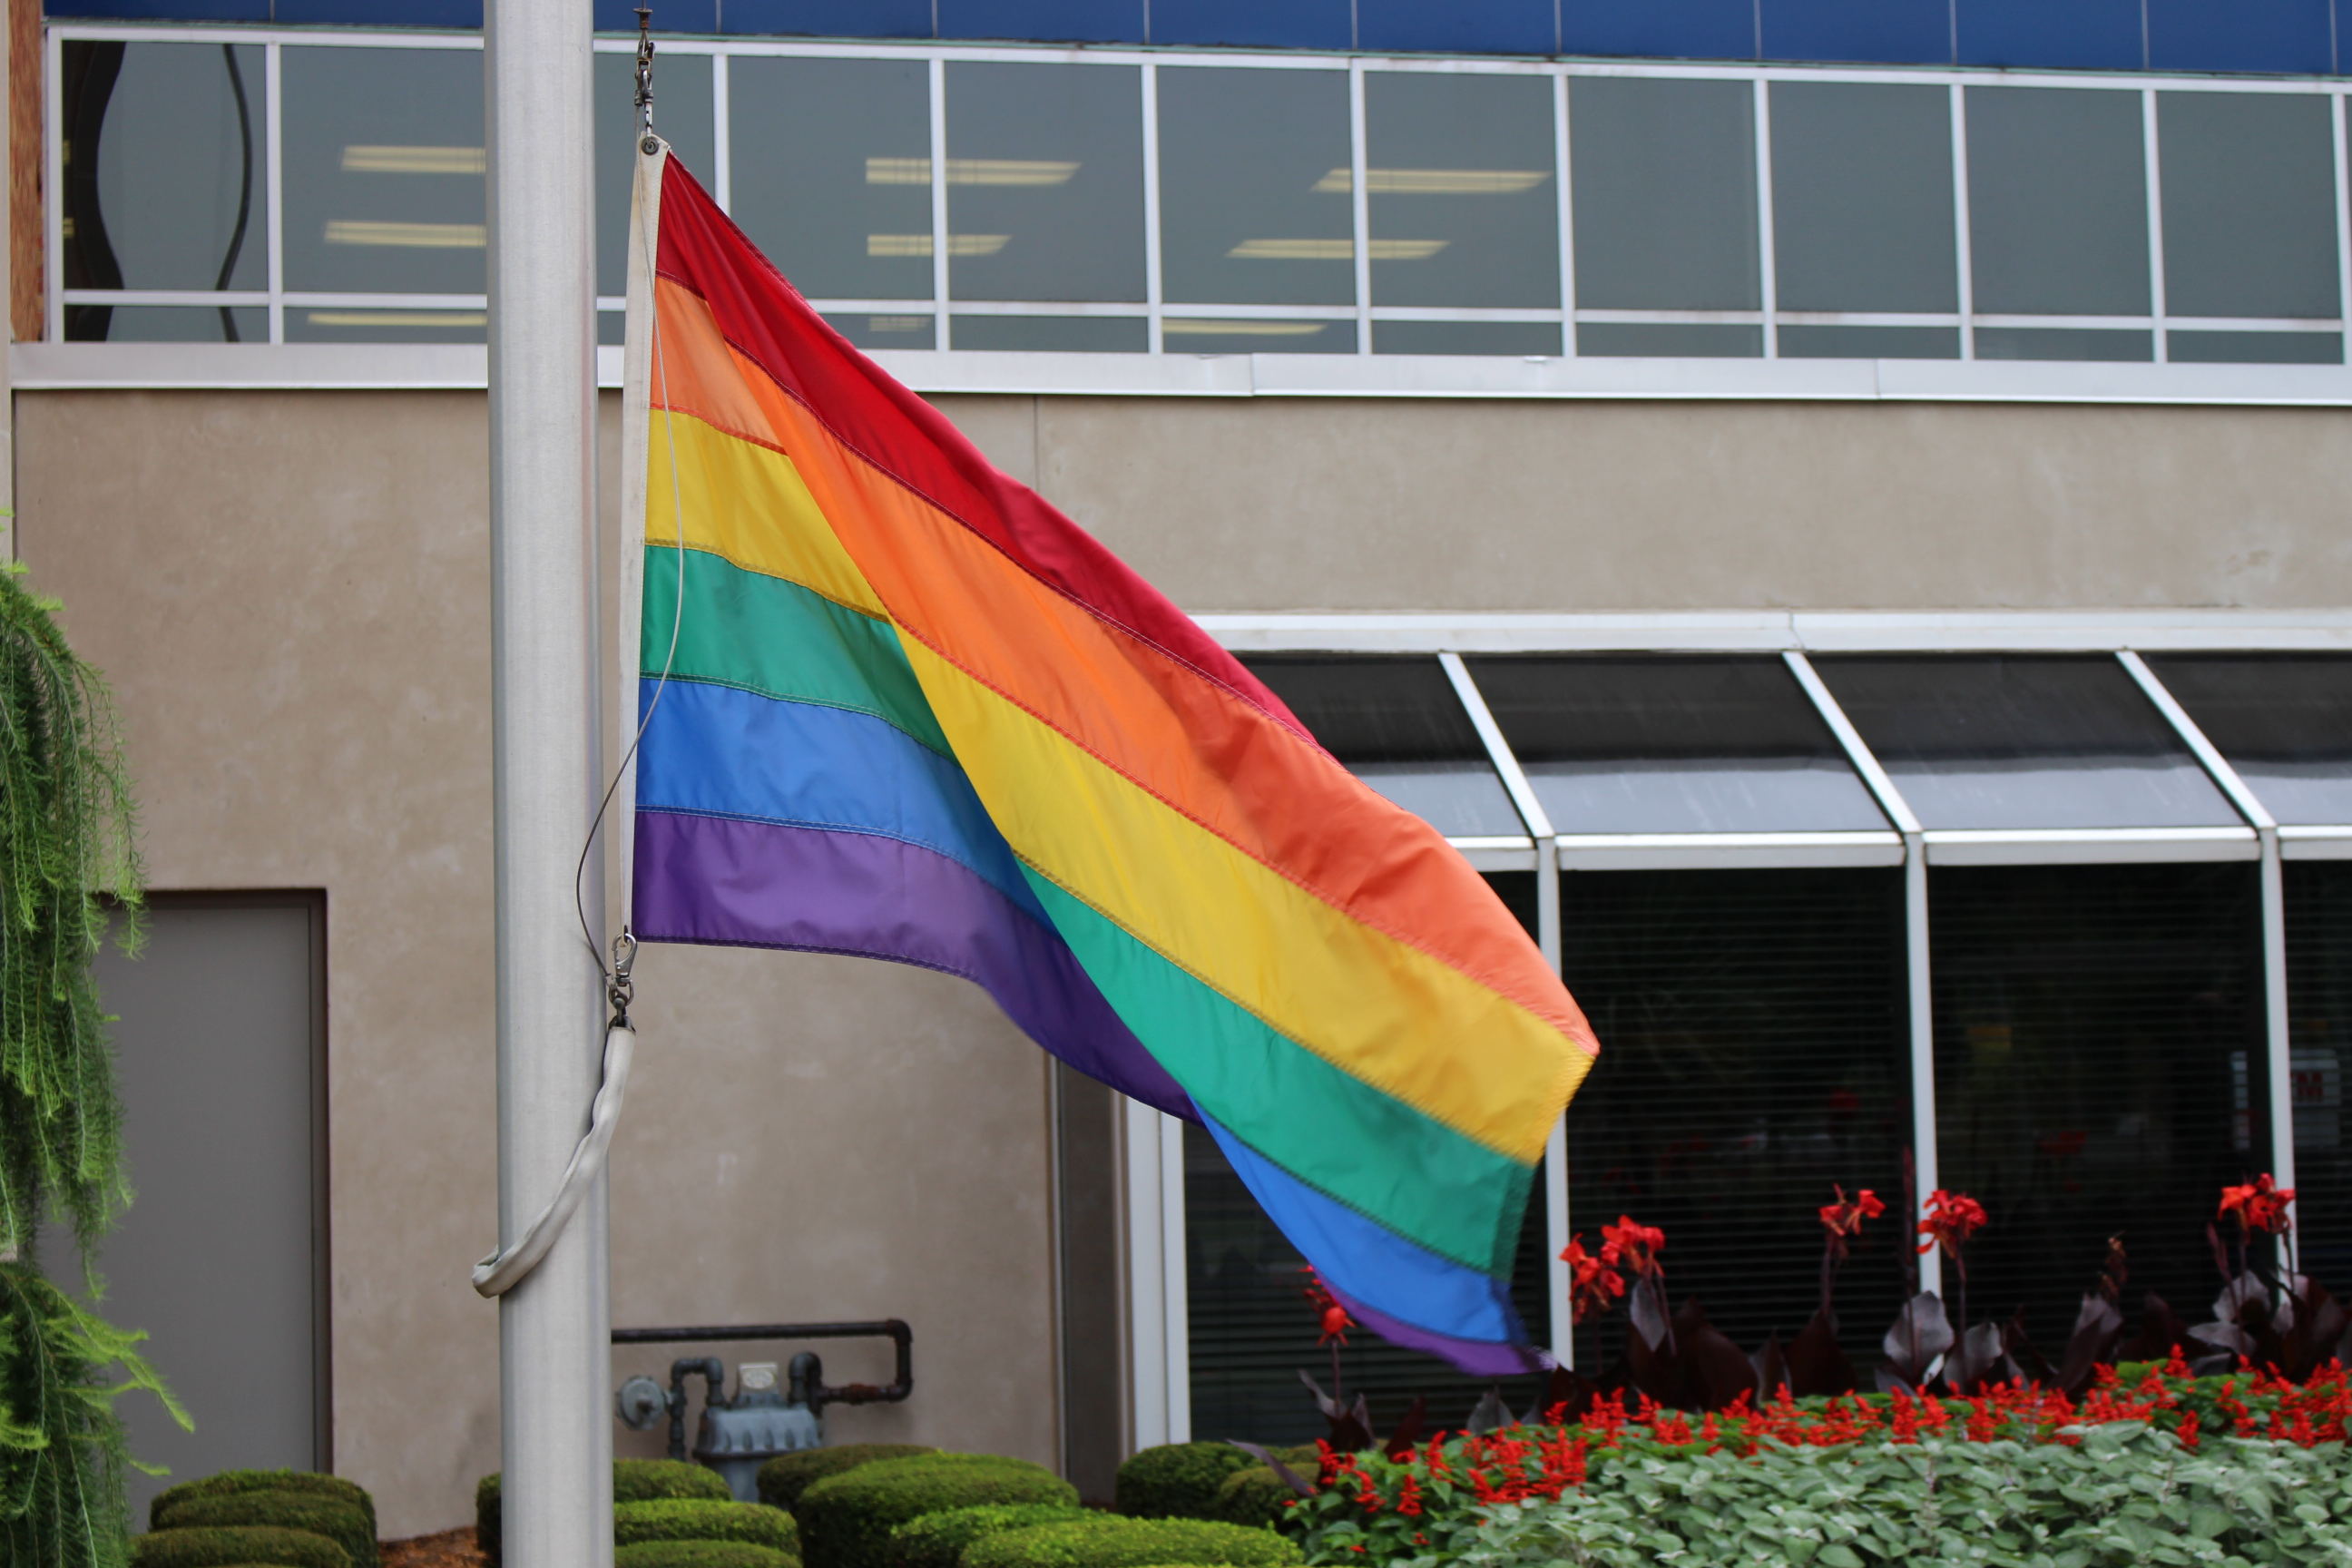 Pride flag flying at Windsor City Hall August 5, 2014. (Photo by Adelle Loiselle.)